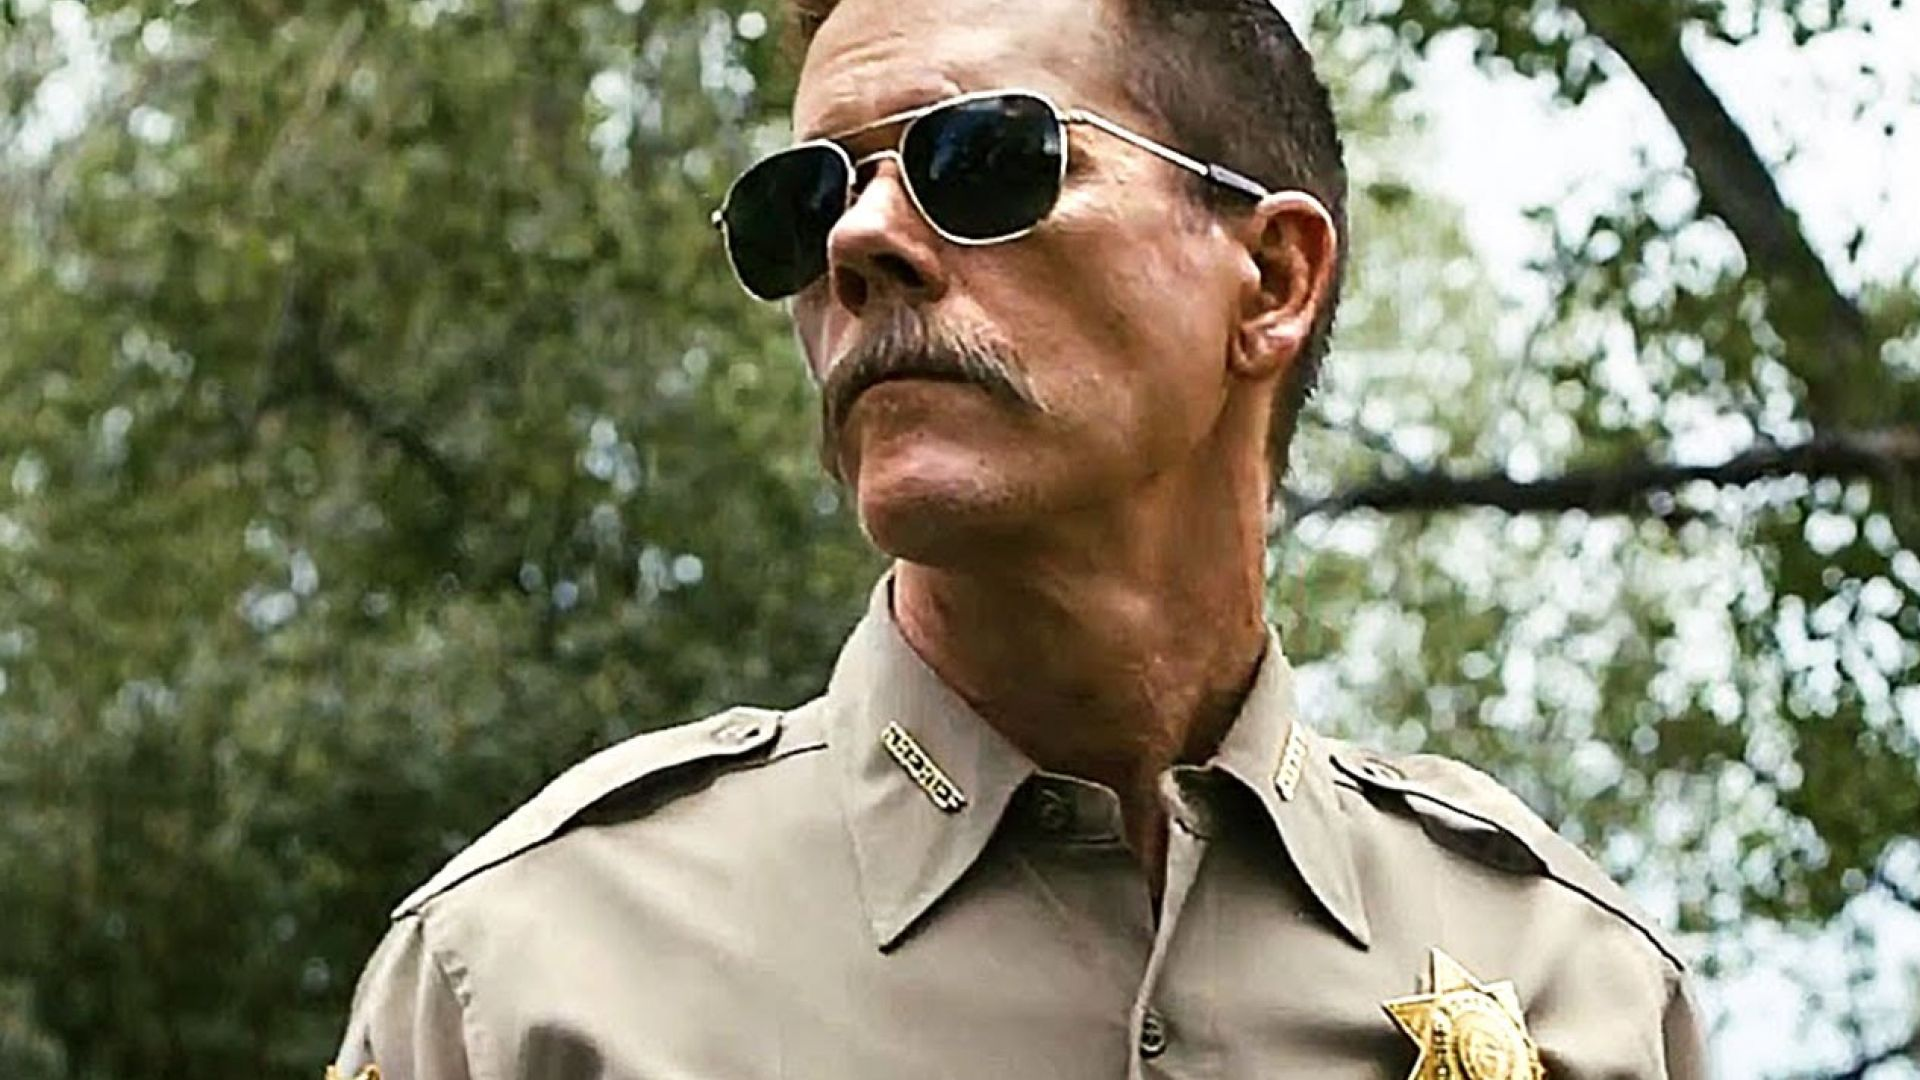 Kevin Bacon not happy when two boys steal his ride in Cop Car